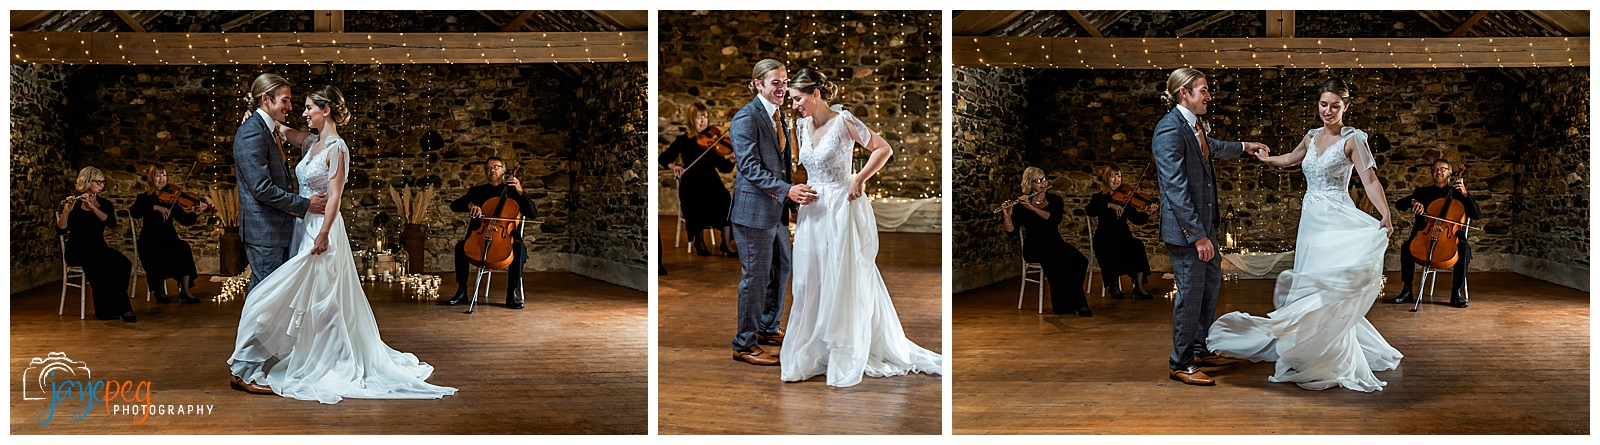 bride and groom dancing to classical musicians